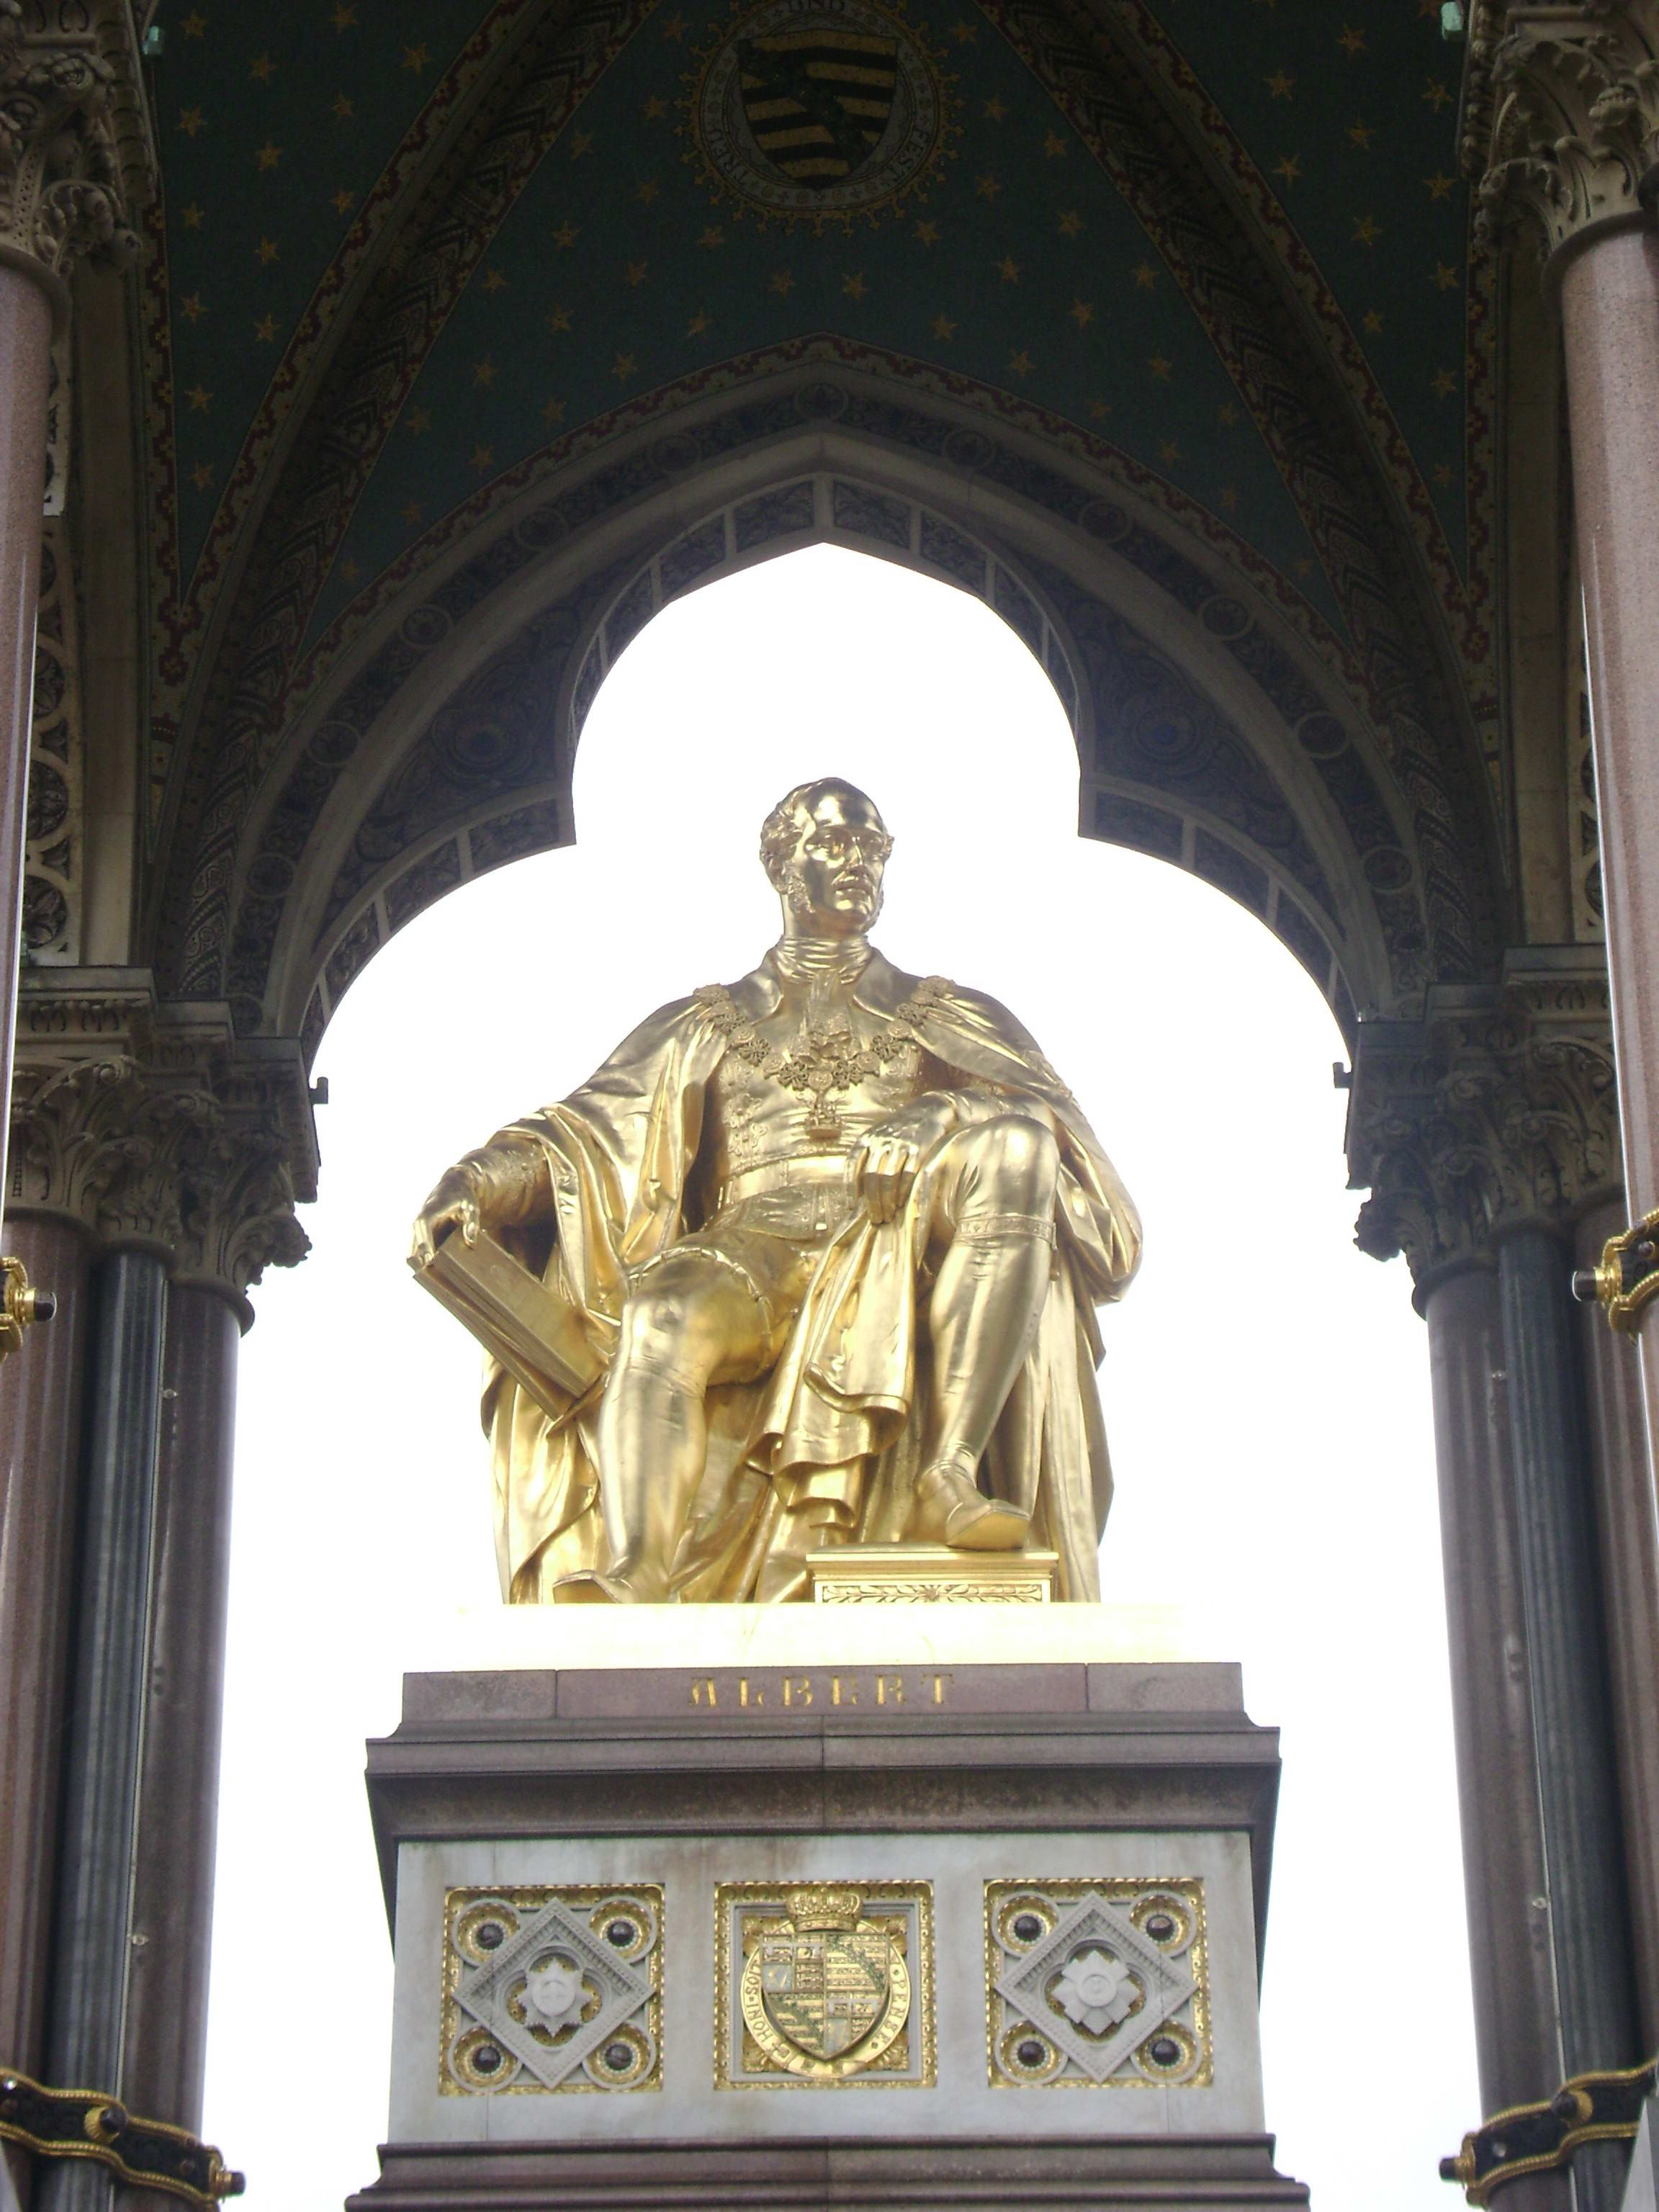 The Memorial Statue Of Prince Albert By John Henry Foley And Thomas Brock